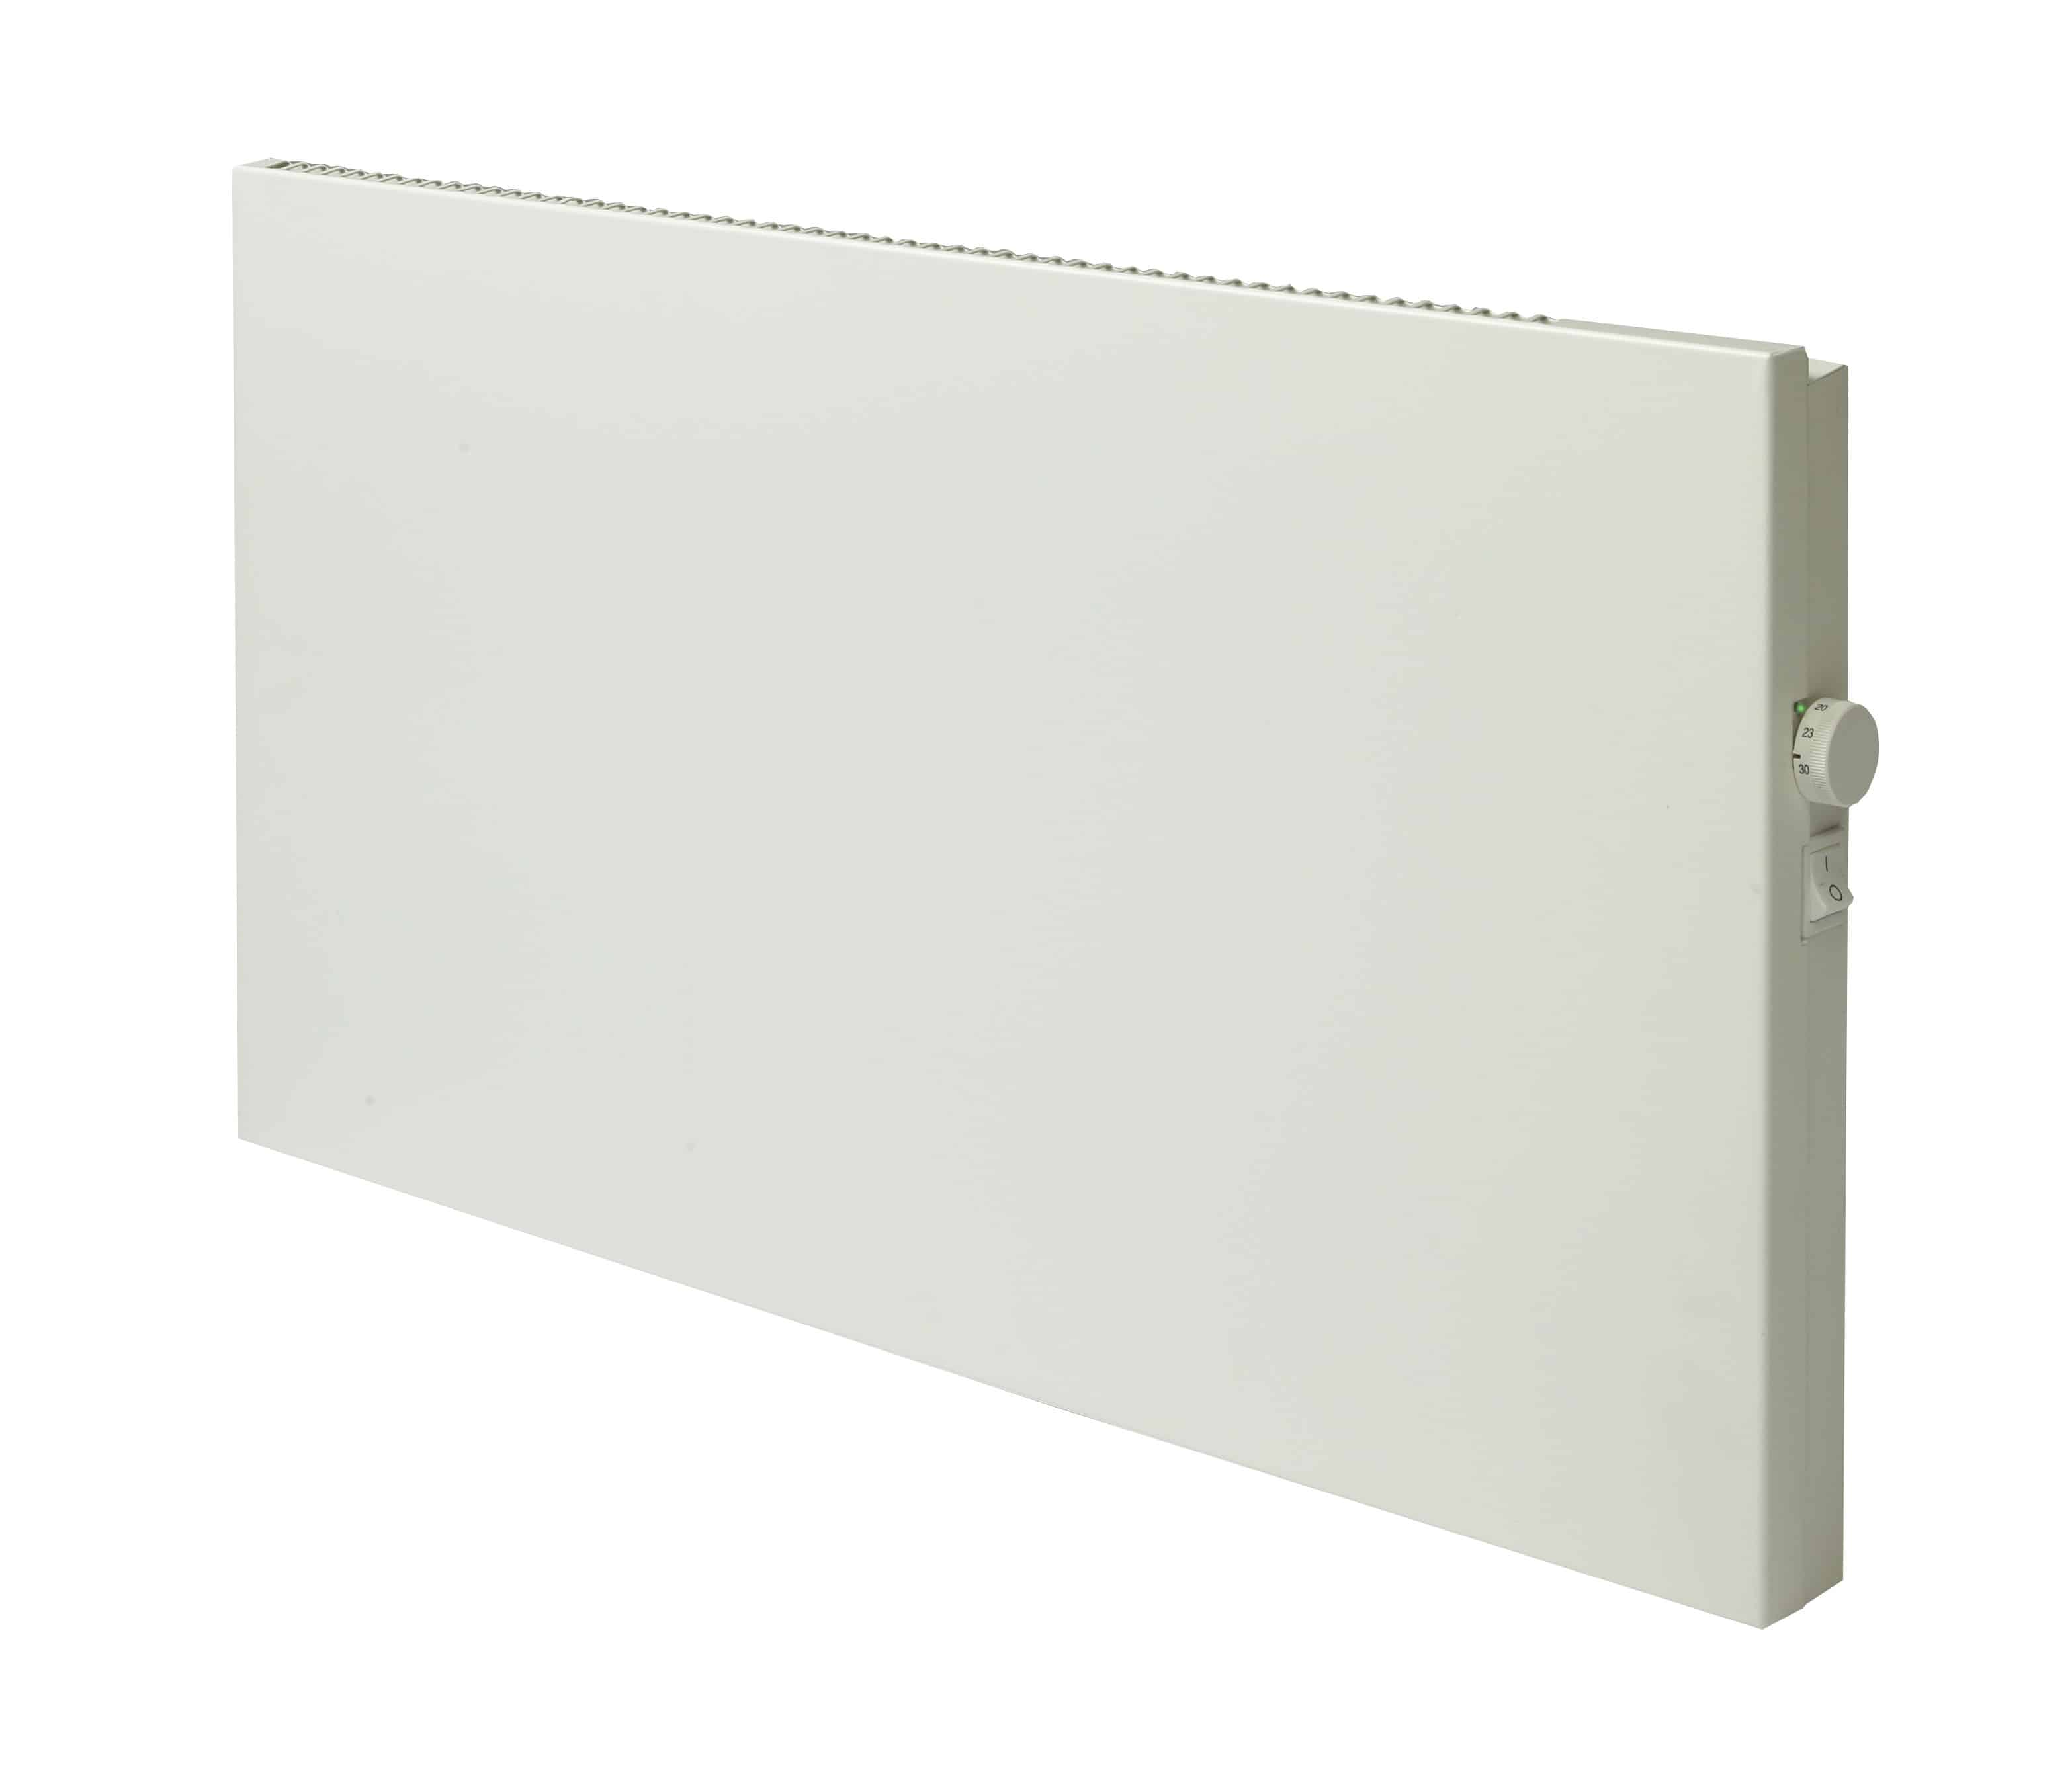 Designer Electric Wall Heaters